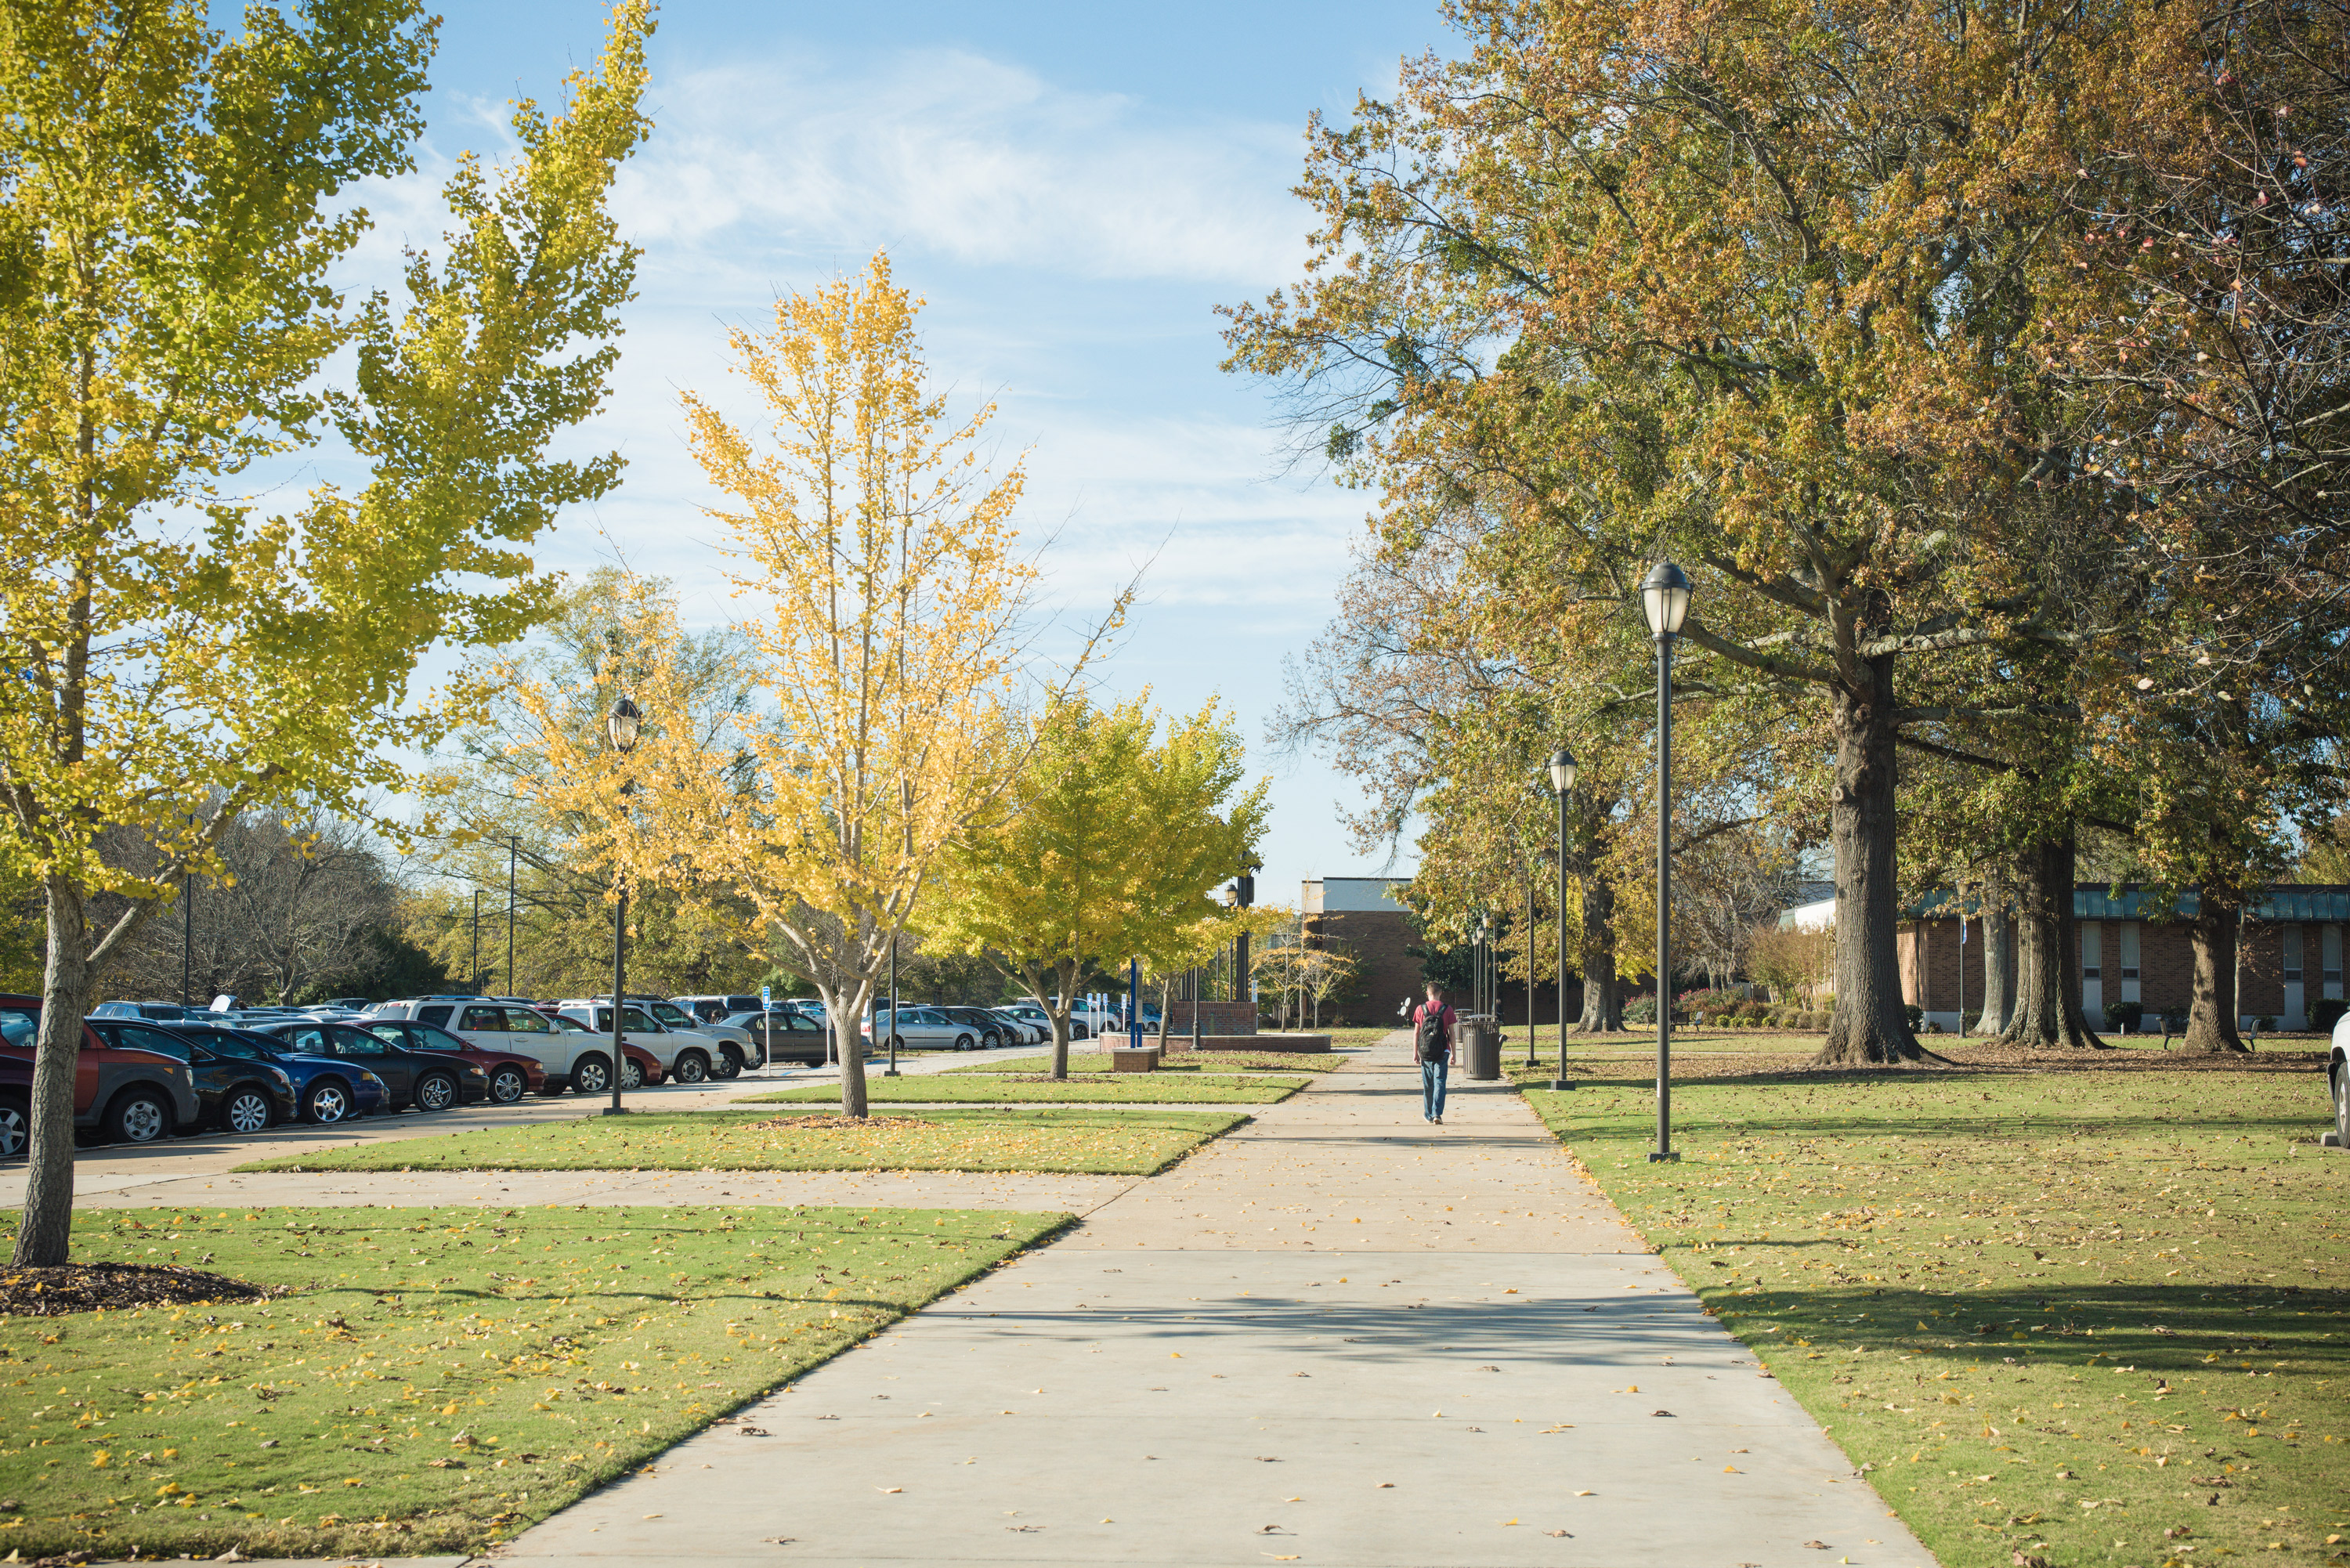 Do you take care of trees on a campus?